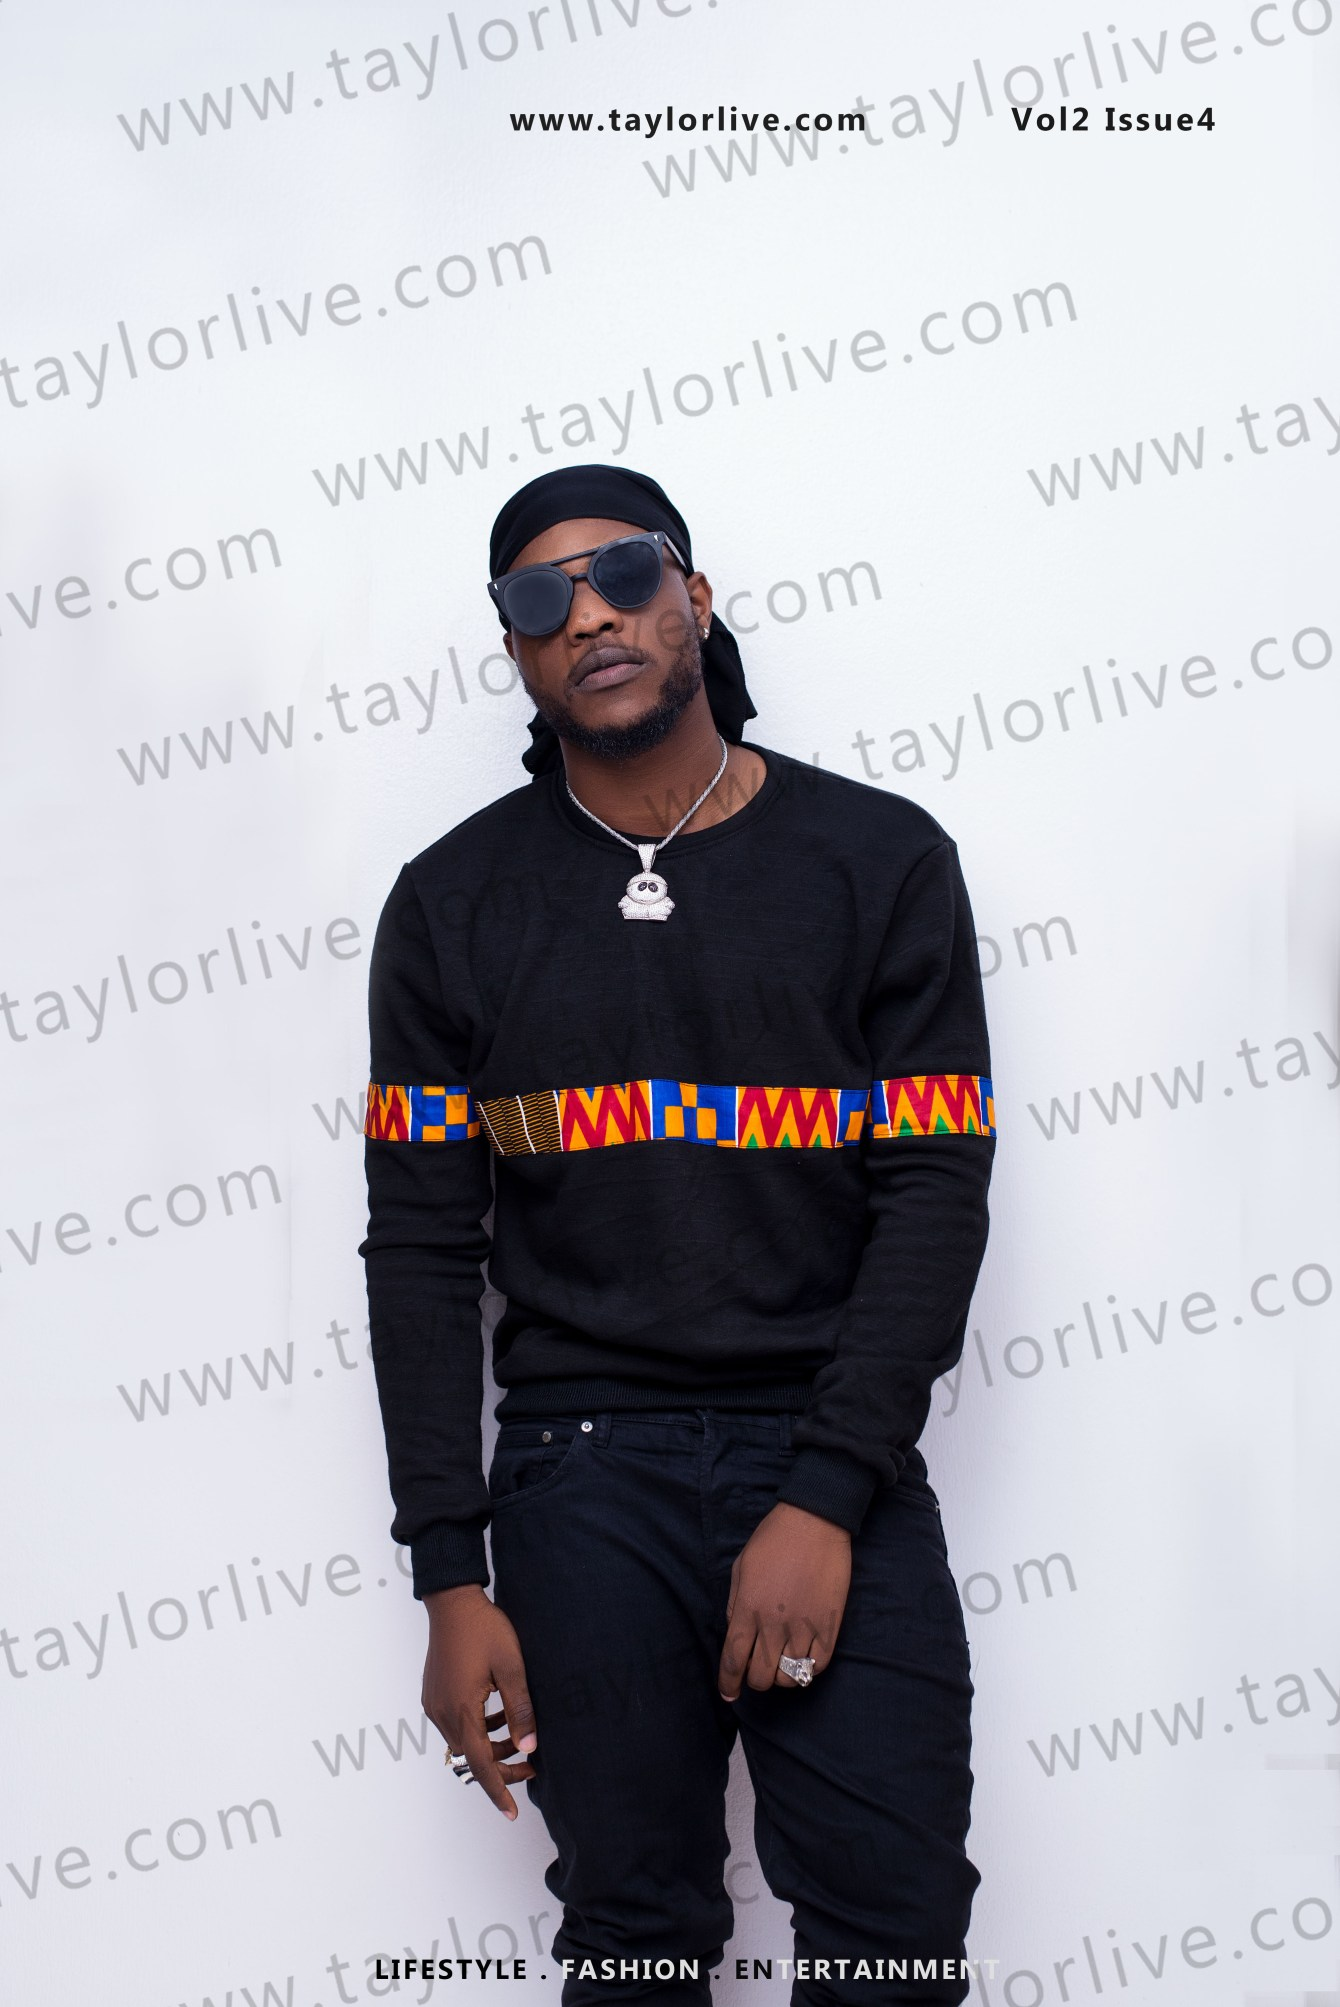 """""""RAZAKING = ROYALTY"""" Damilola Afolabi popularly known as L.A.X Covers Taylor Live Magazine's Latest Issue ( TL Magazine)"""